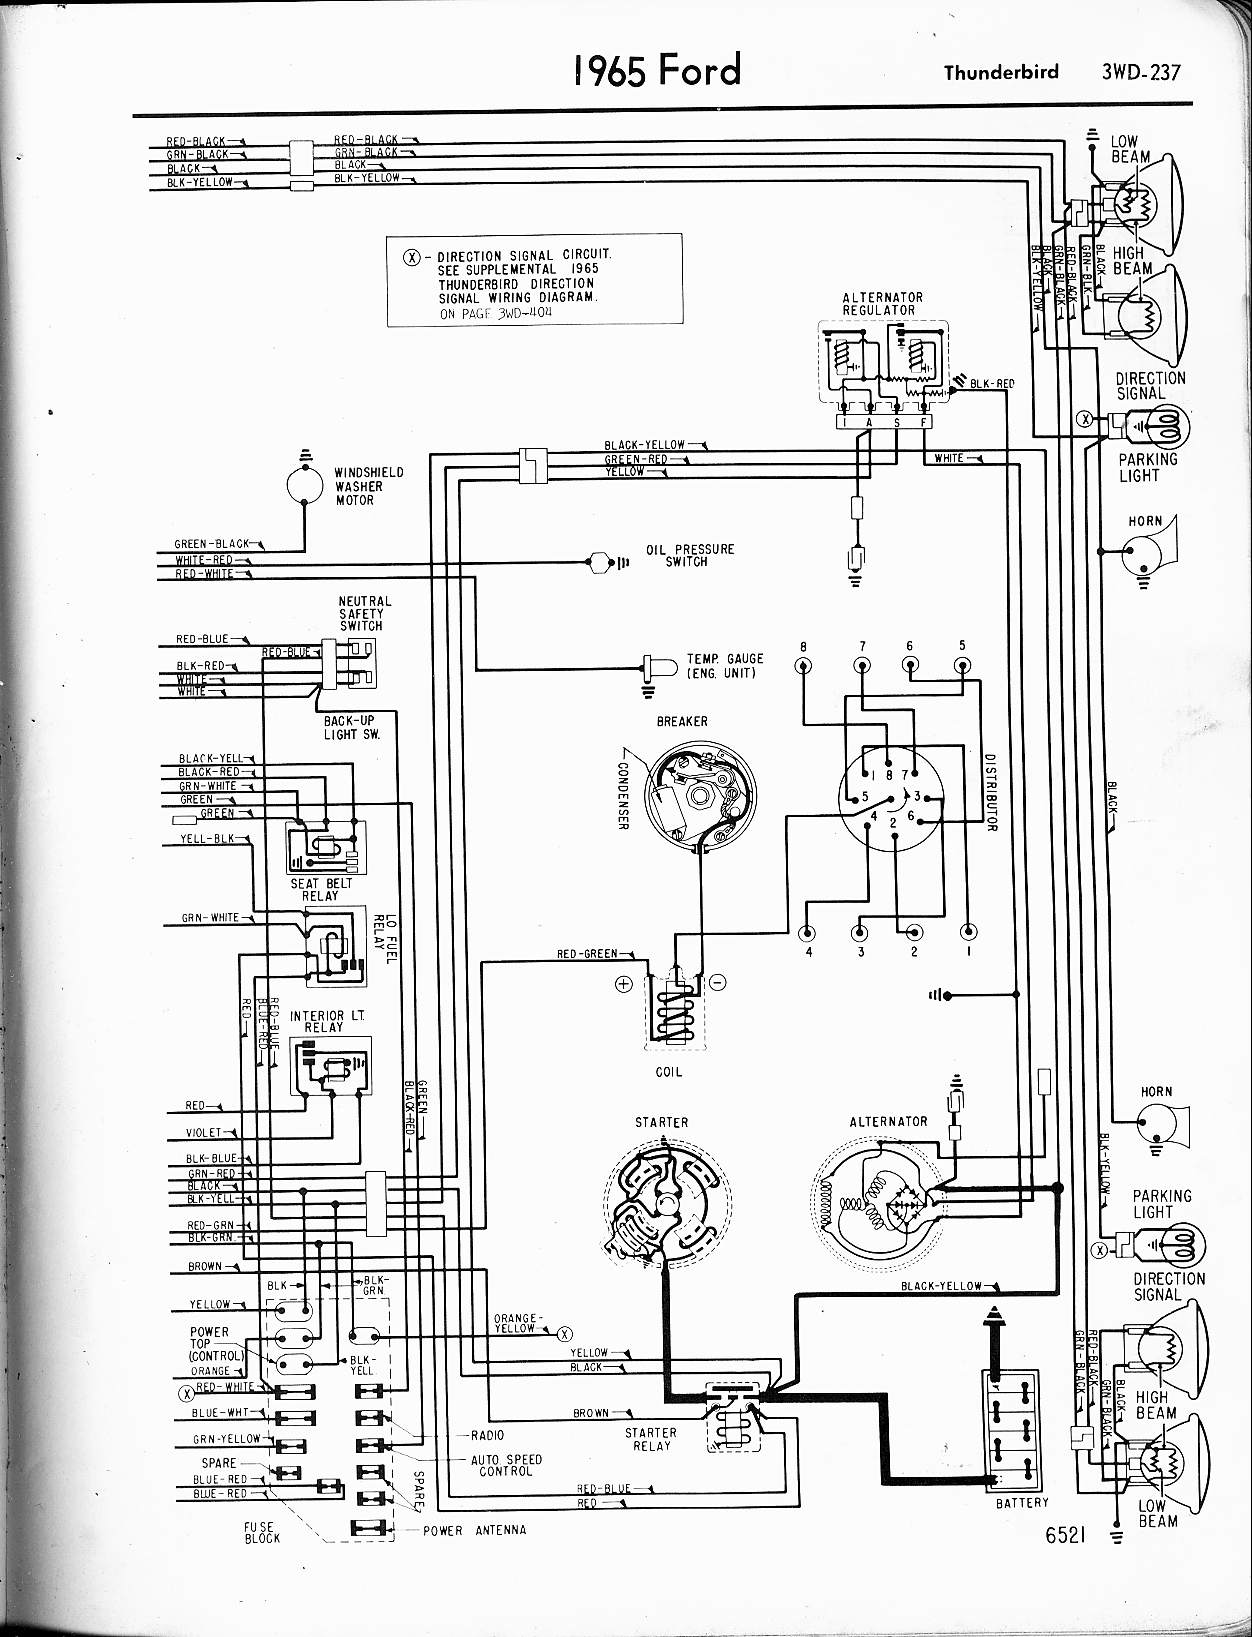 MWire5765 237 57 65 ford wiring diagrams Ford E 350 Wiring Diagrams at mifinder.co